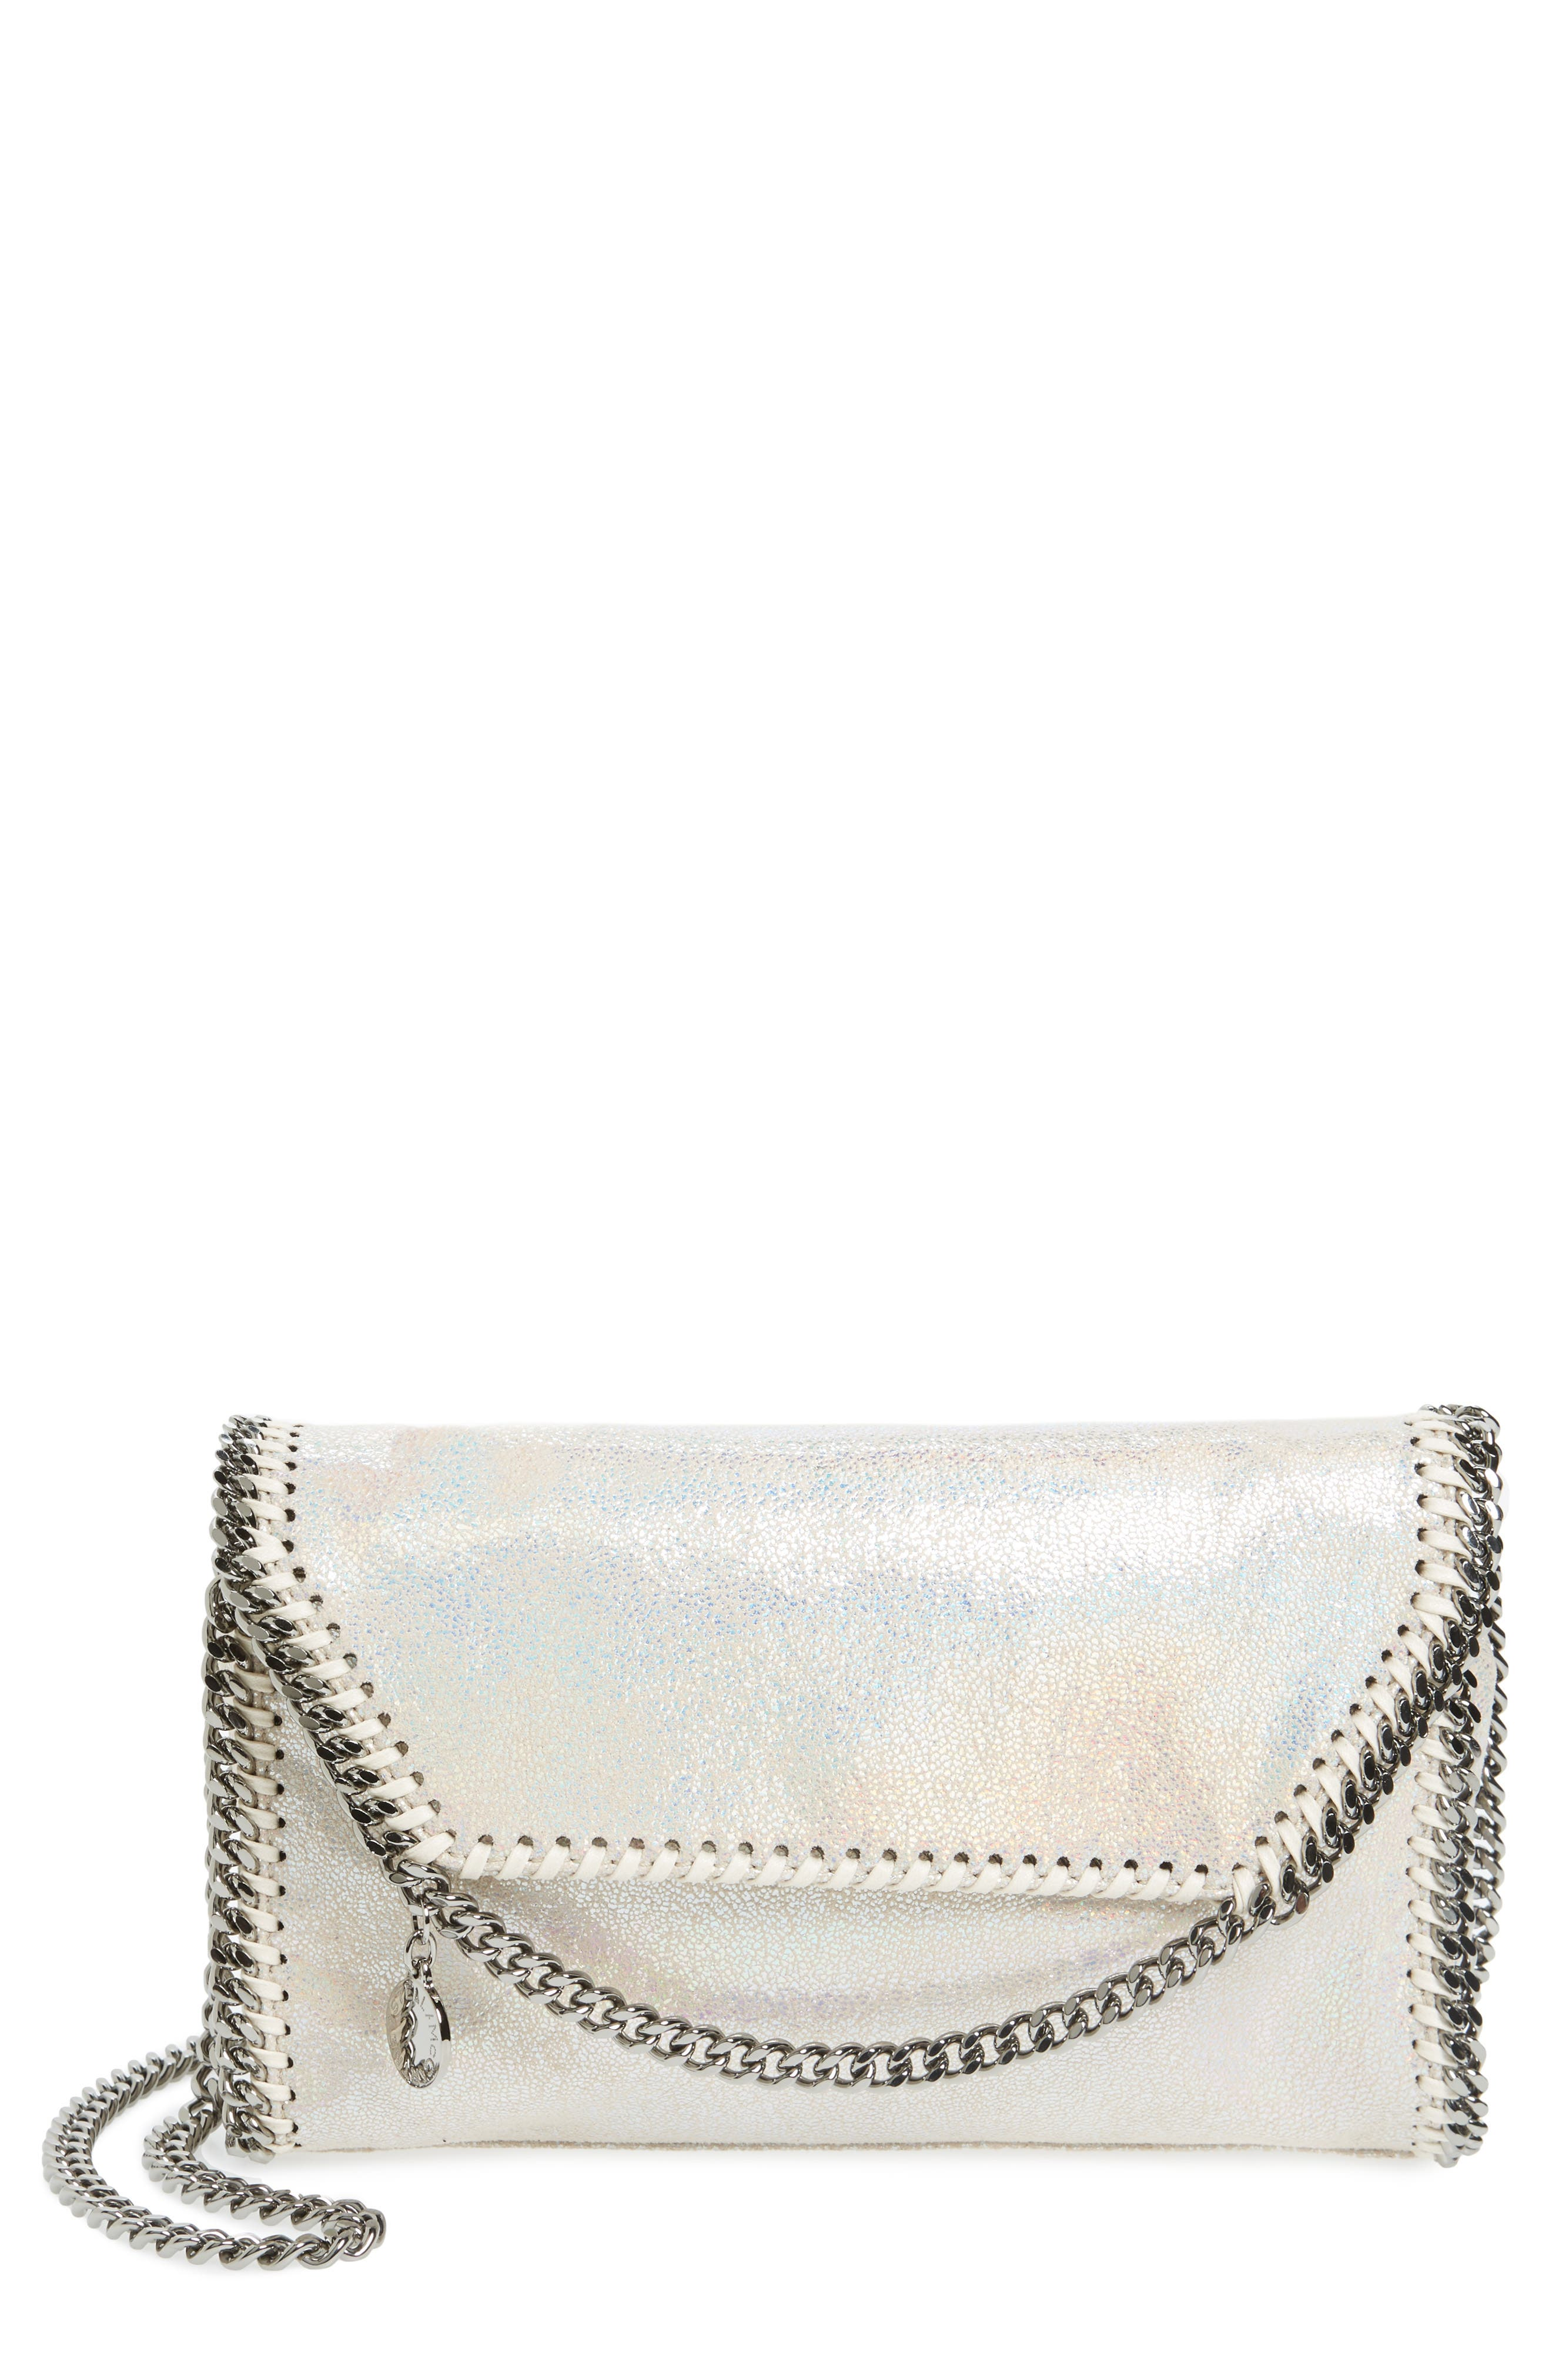 Alternate Image 1 Selected - Stella McCartney Falabella Shaggy Deer Faux Leather Crossbody Bag